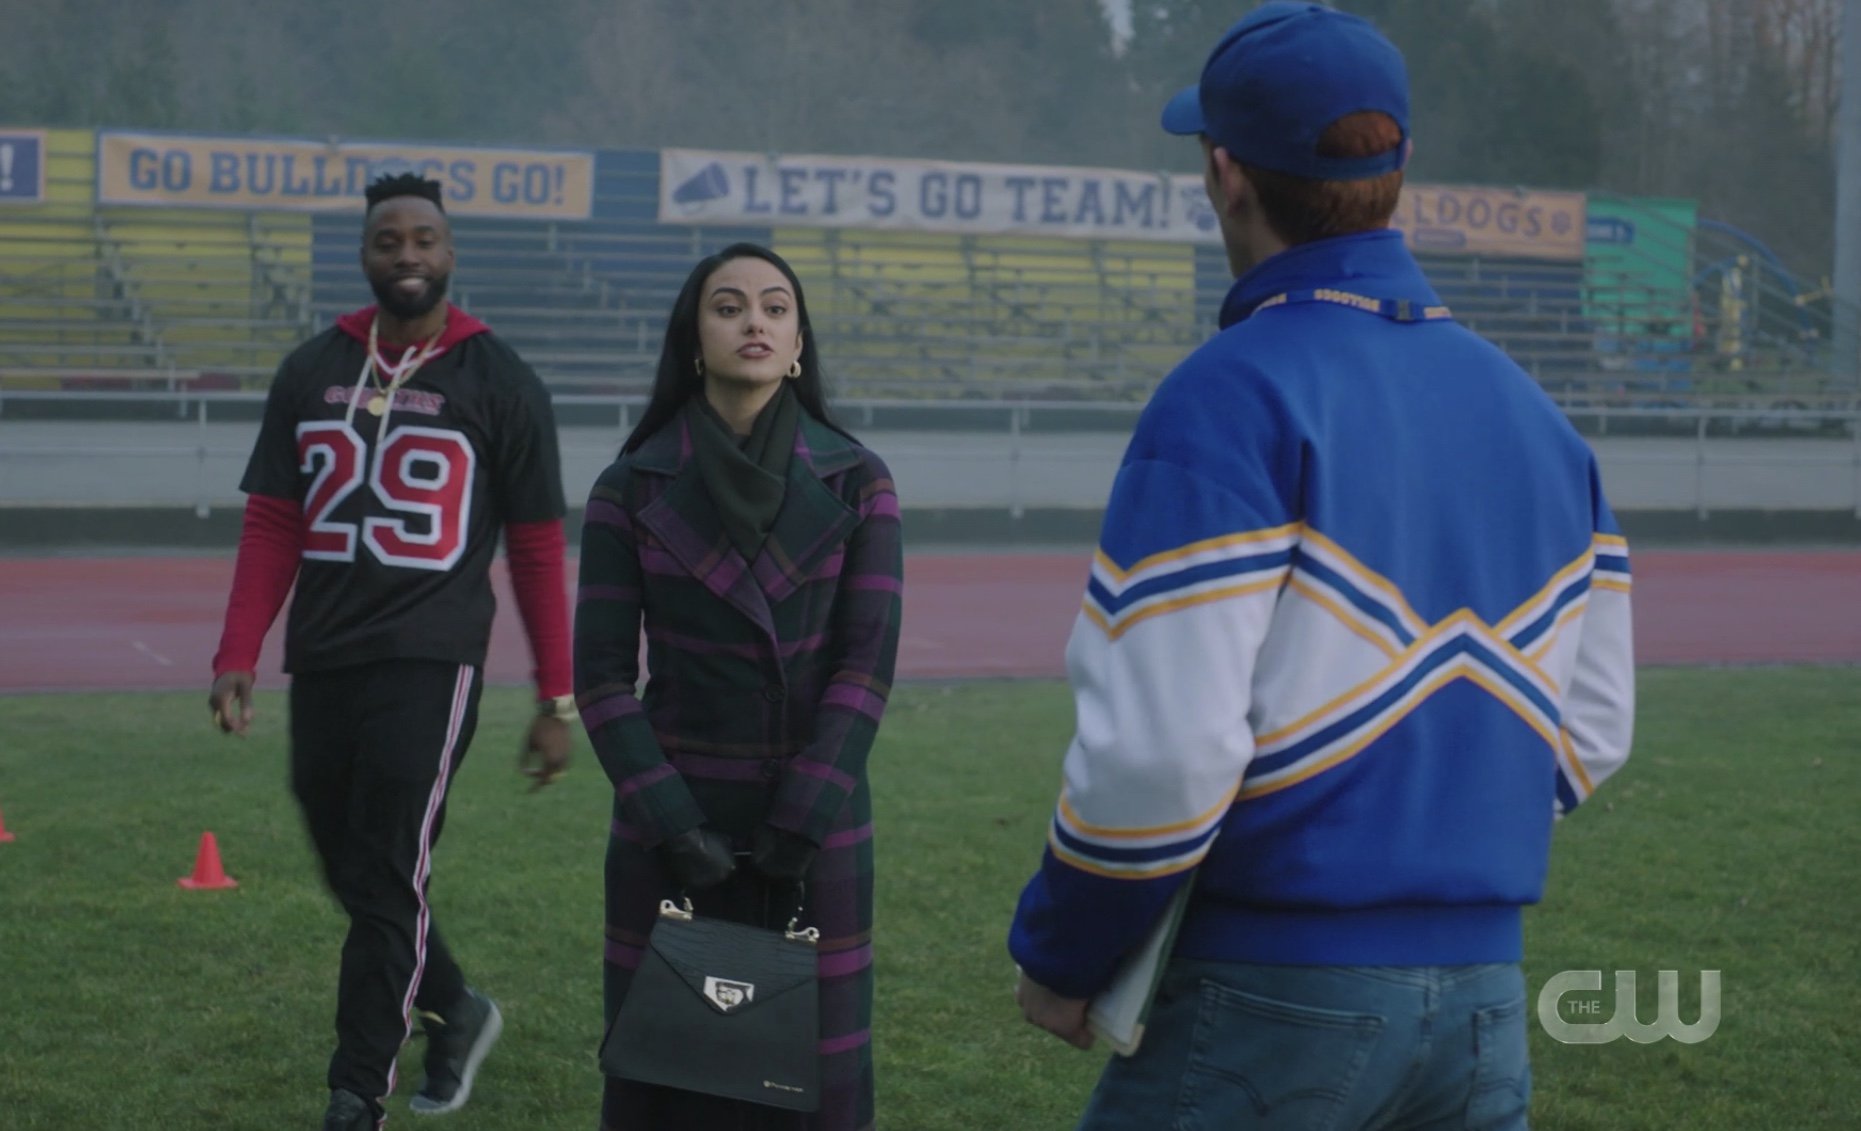 The New York Goliath's own T-Dub comes to Riverdale! Who?